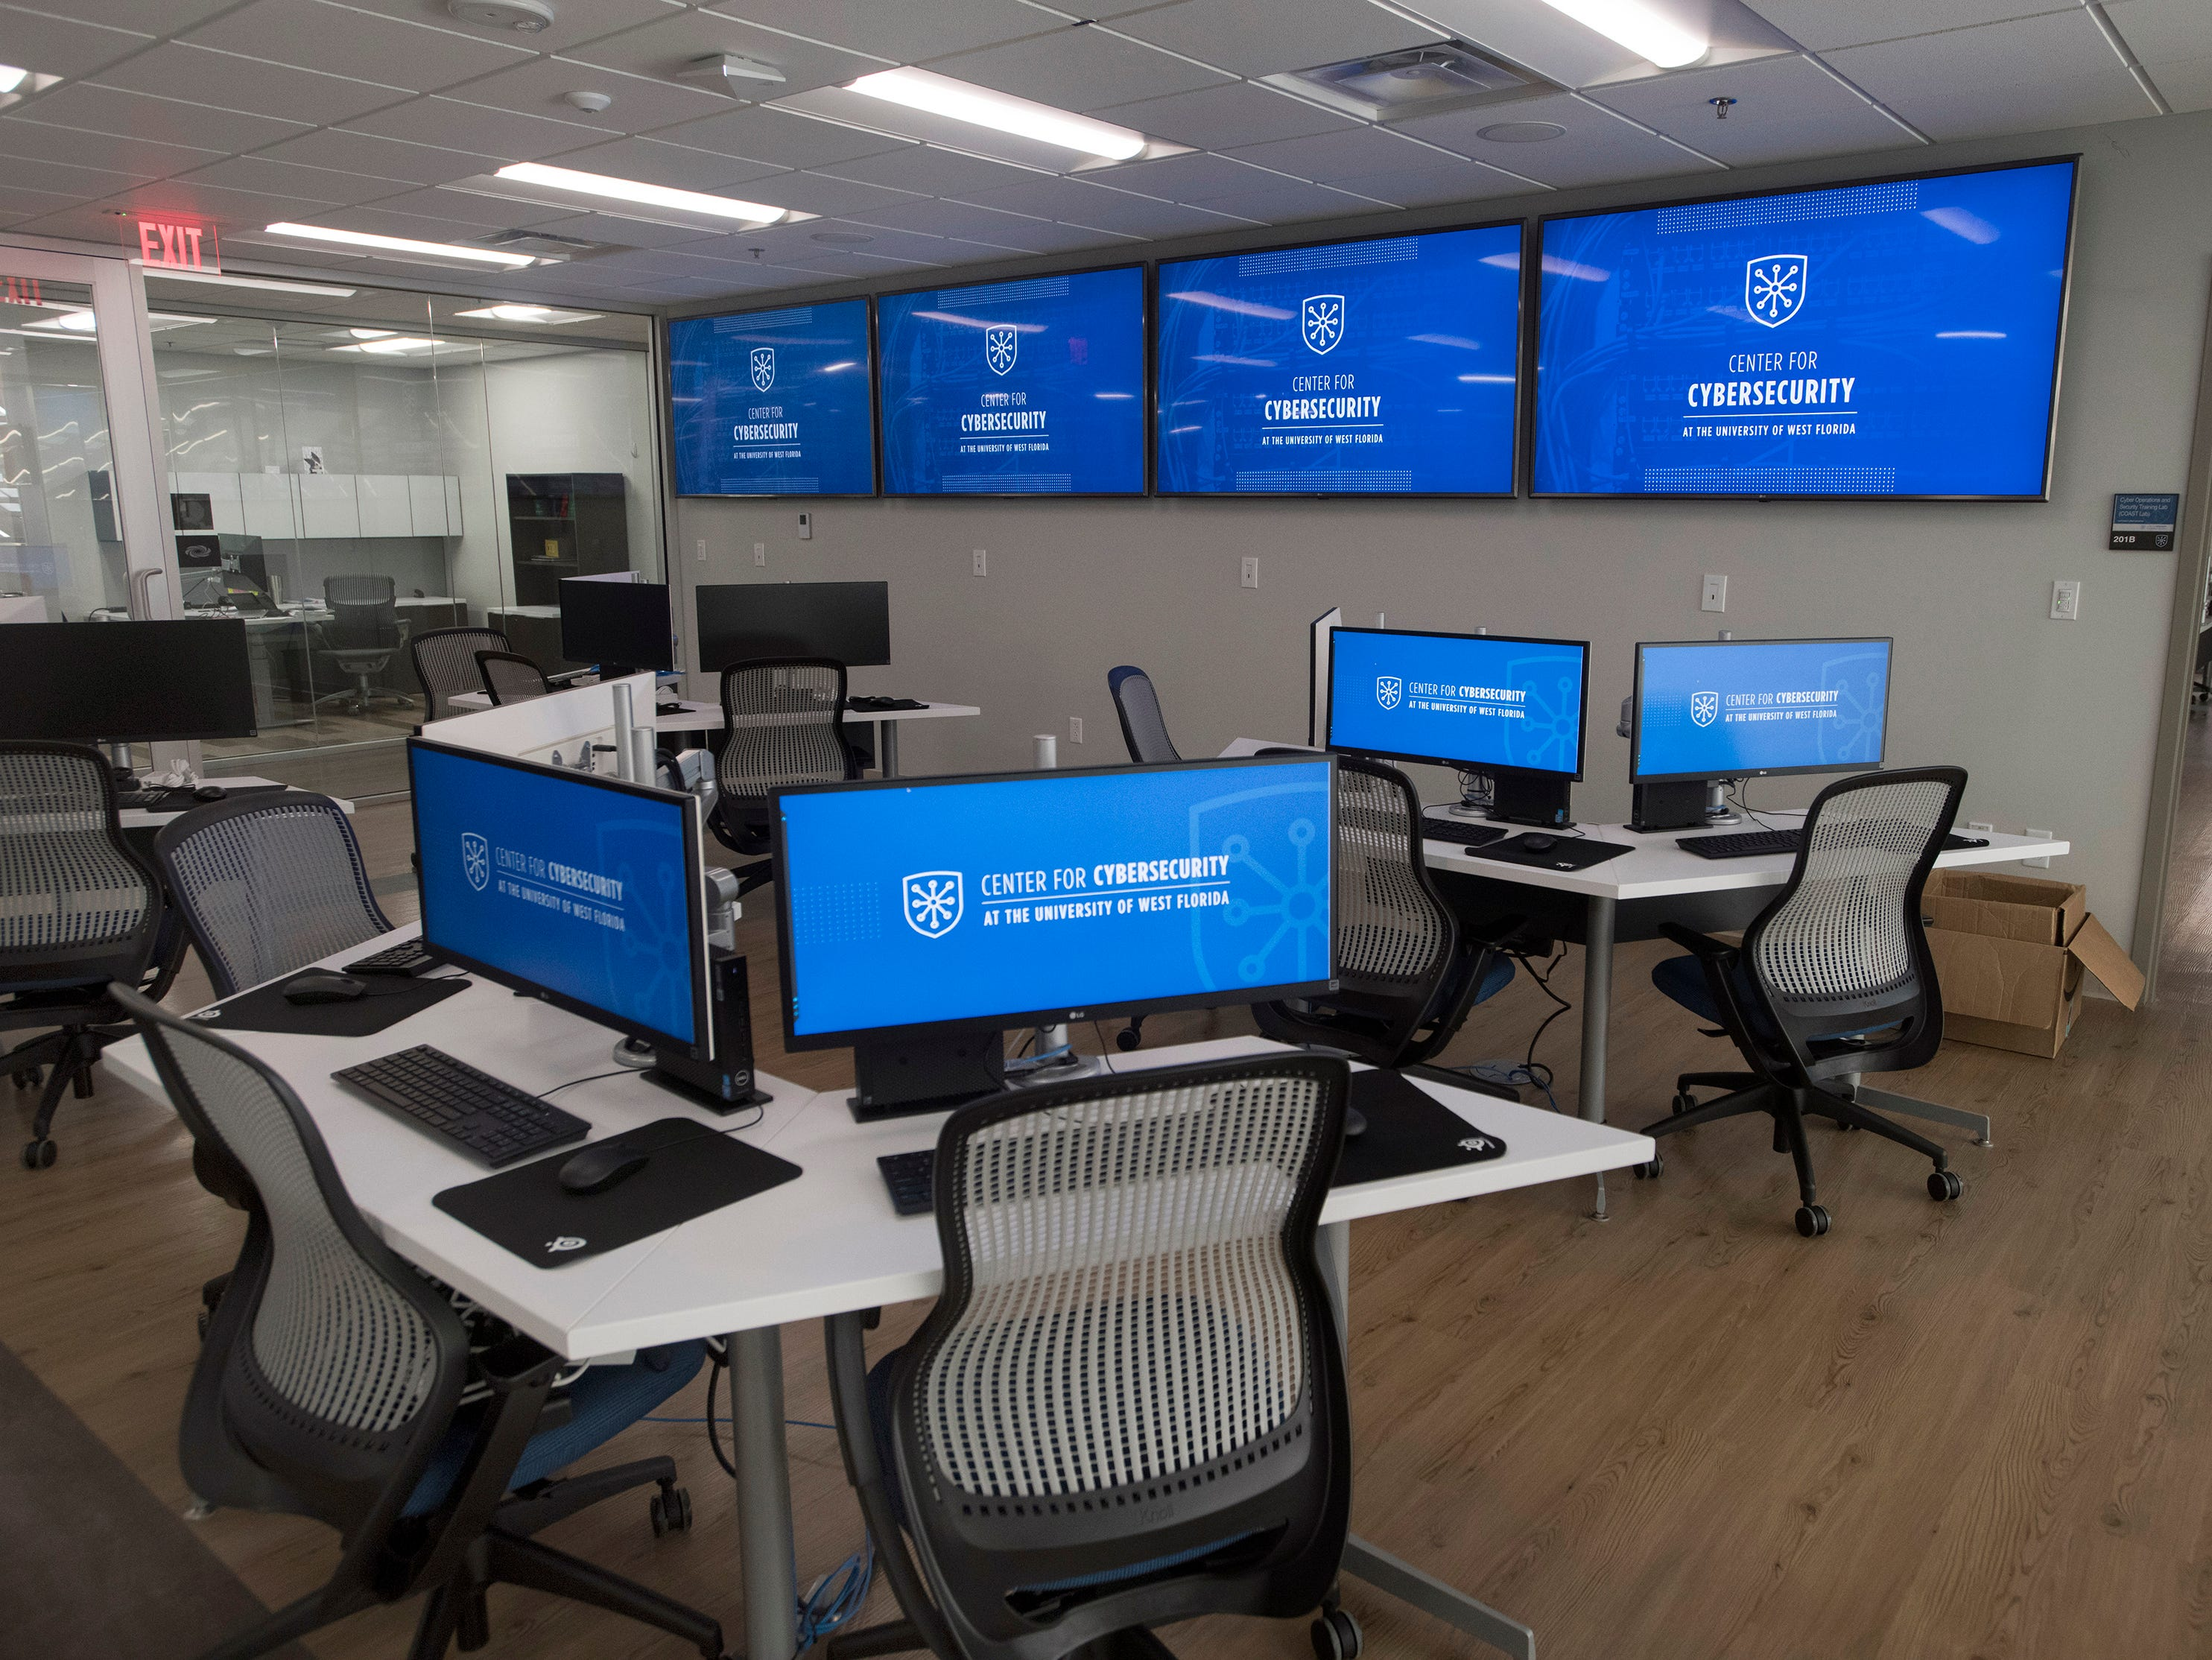 The University of West Florida unveils its new Center For Cybersecurity on Monday, April 15, 2019. Located in the Studer Community Institute building the new UWF location will increase the university's presence in downtown Pensacola.